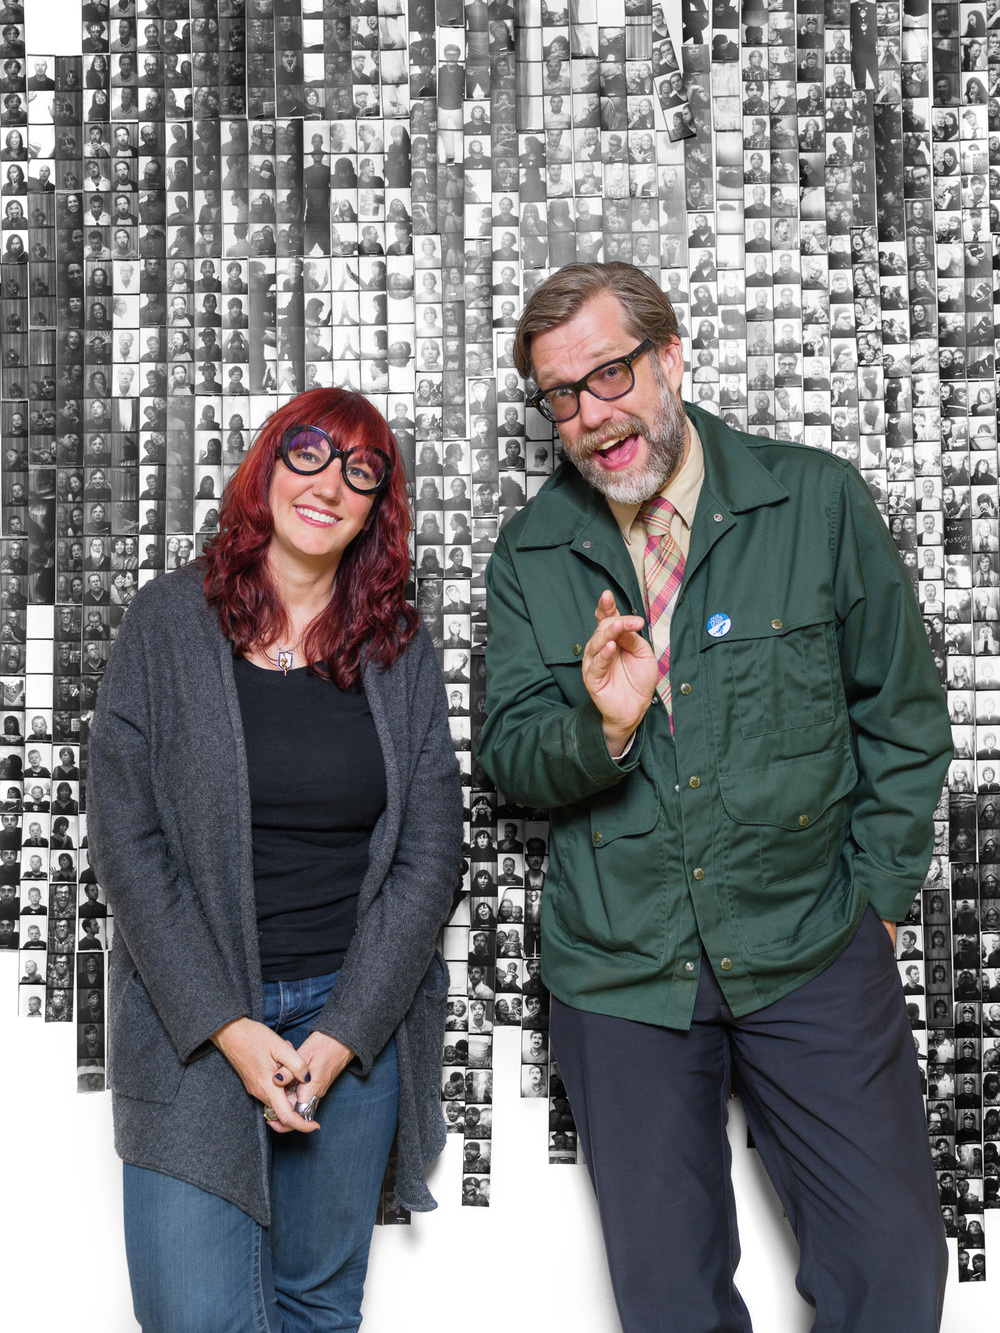 Sub Pop's Megan Jasper and John Roderick of The Long Winters, client: City Arts Magazine